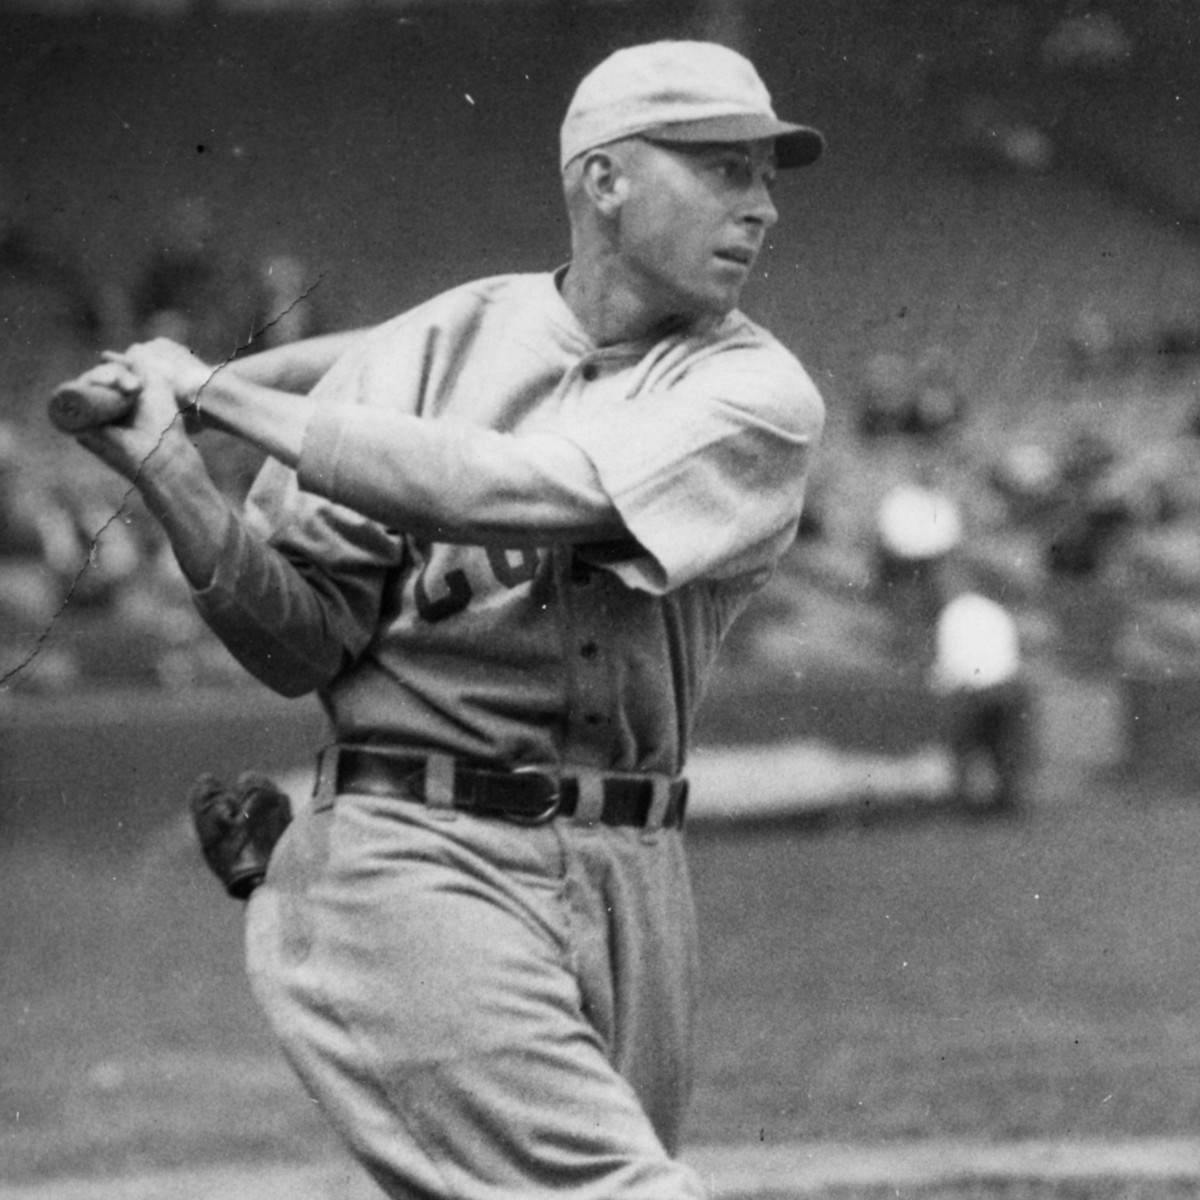 Charlie Hollocher (NATIONAL BASEBALL HALL OF FAME LIBRARY)